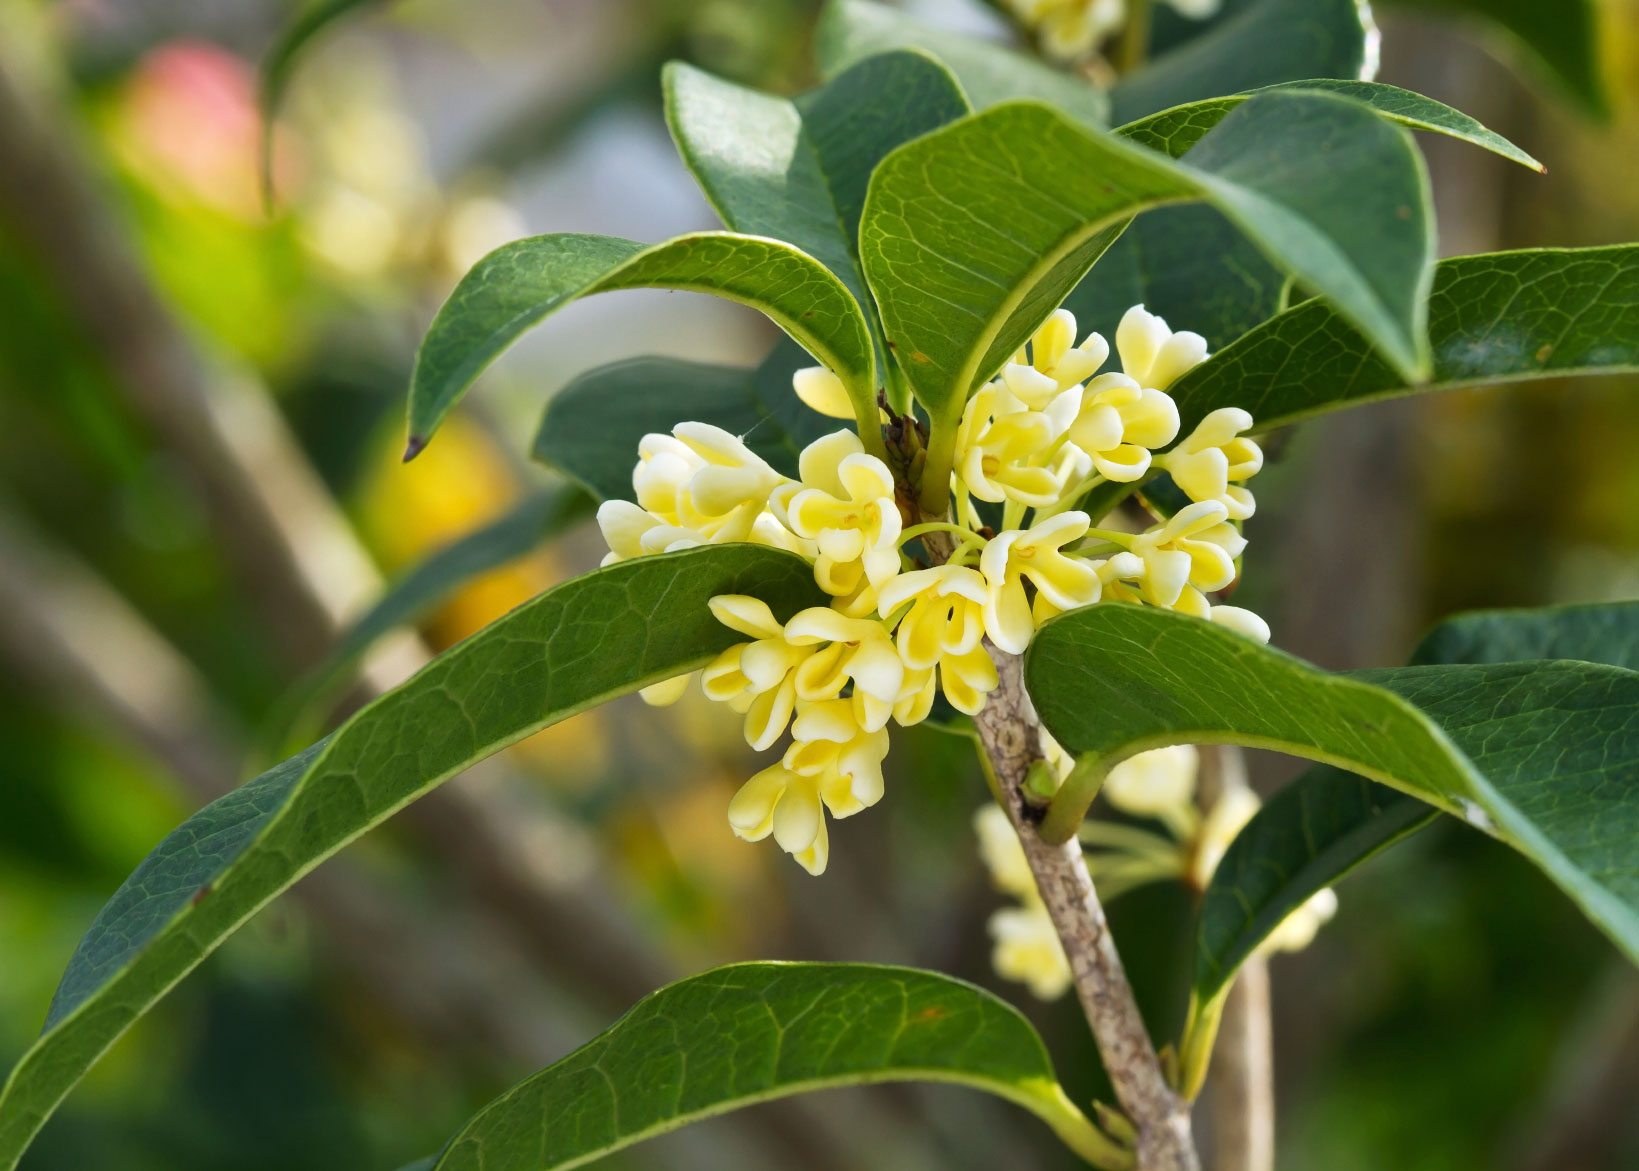 Osmanthus tea olive care tips for growing osmanthus plants for Olive plant care